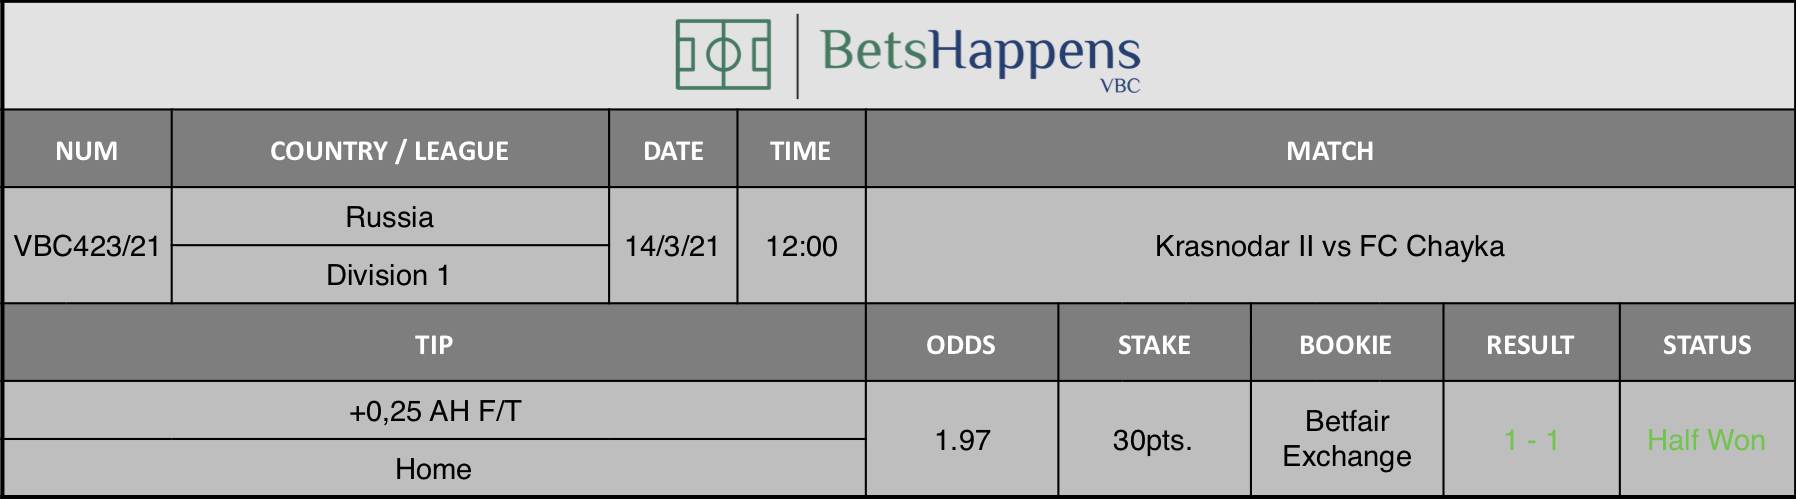 Results of our tip for the Krasnodar II vs FC Chayka match where +0,25 AH F/T  Home is recommended.